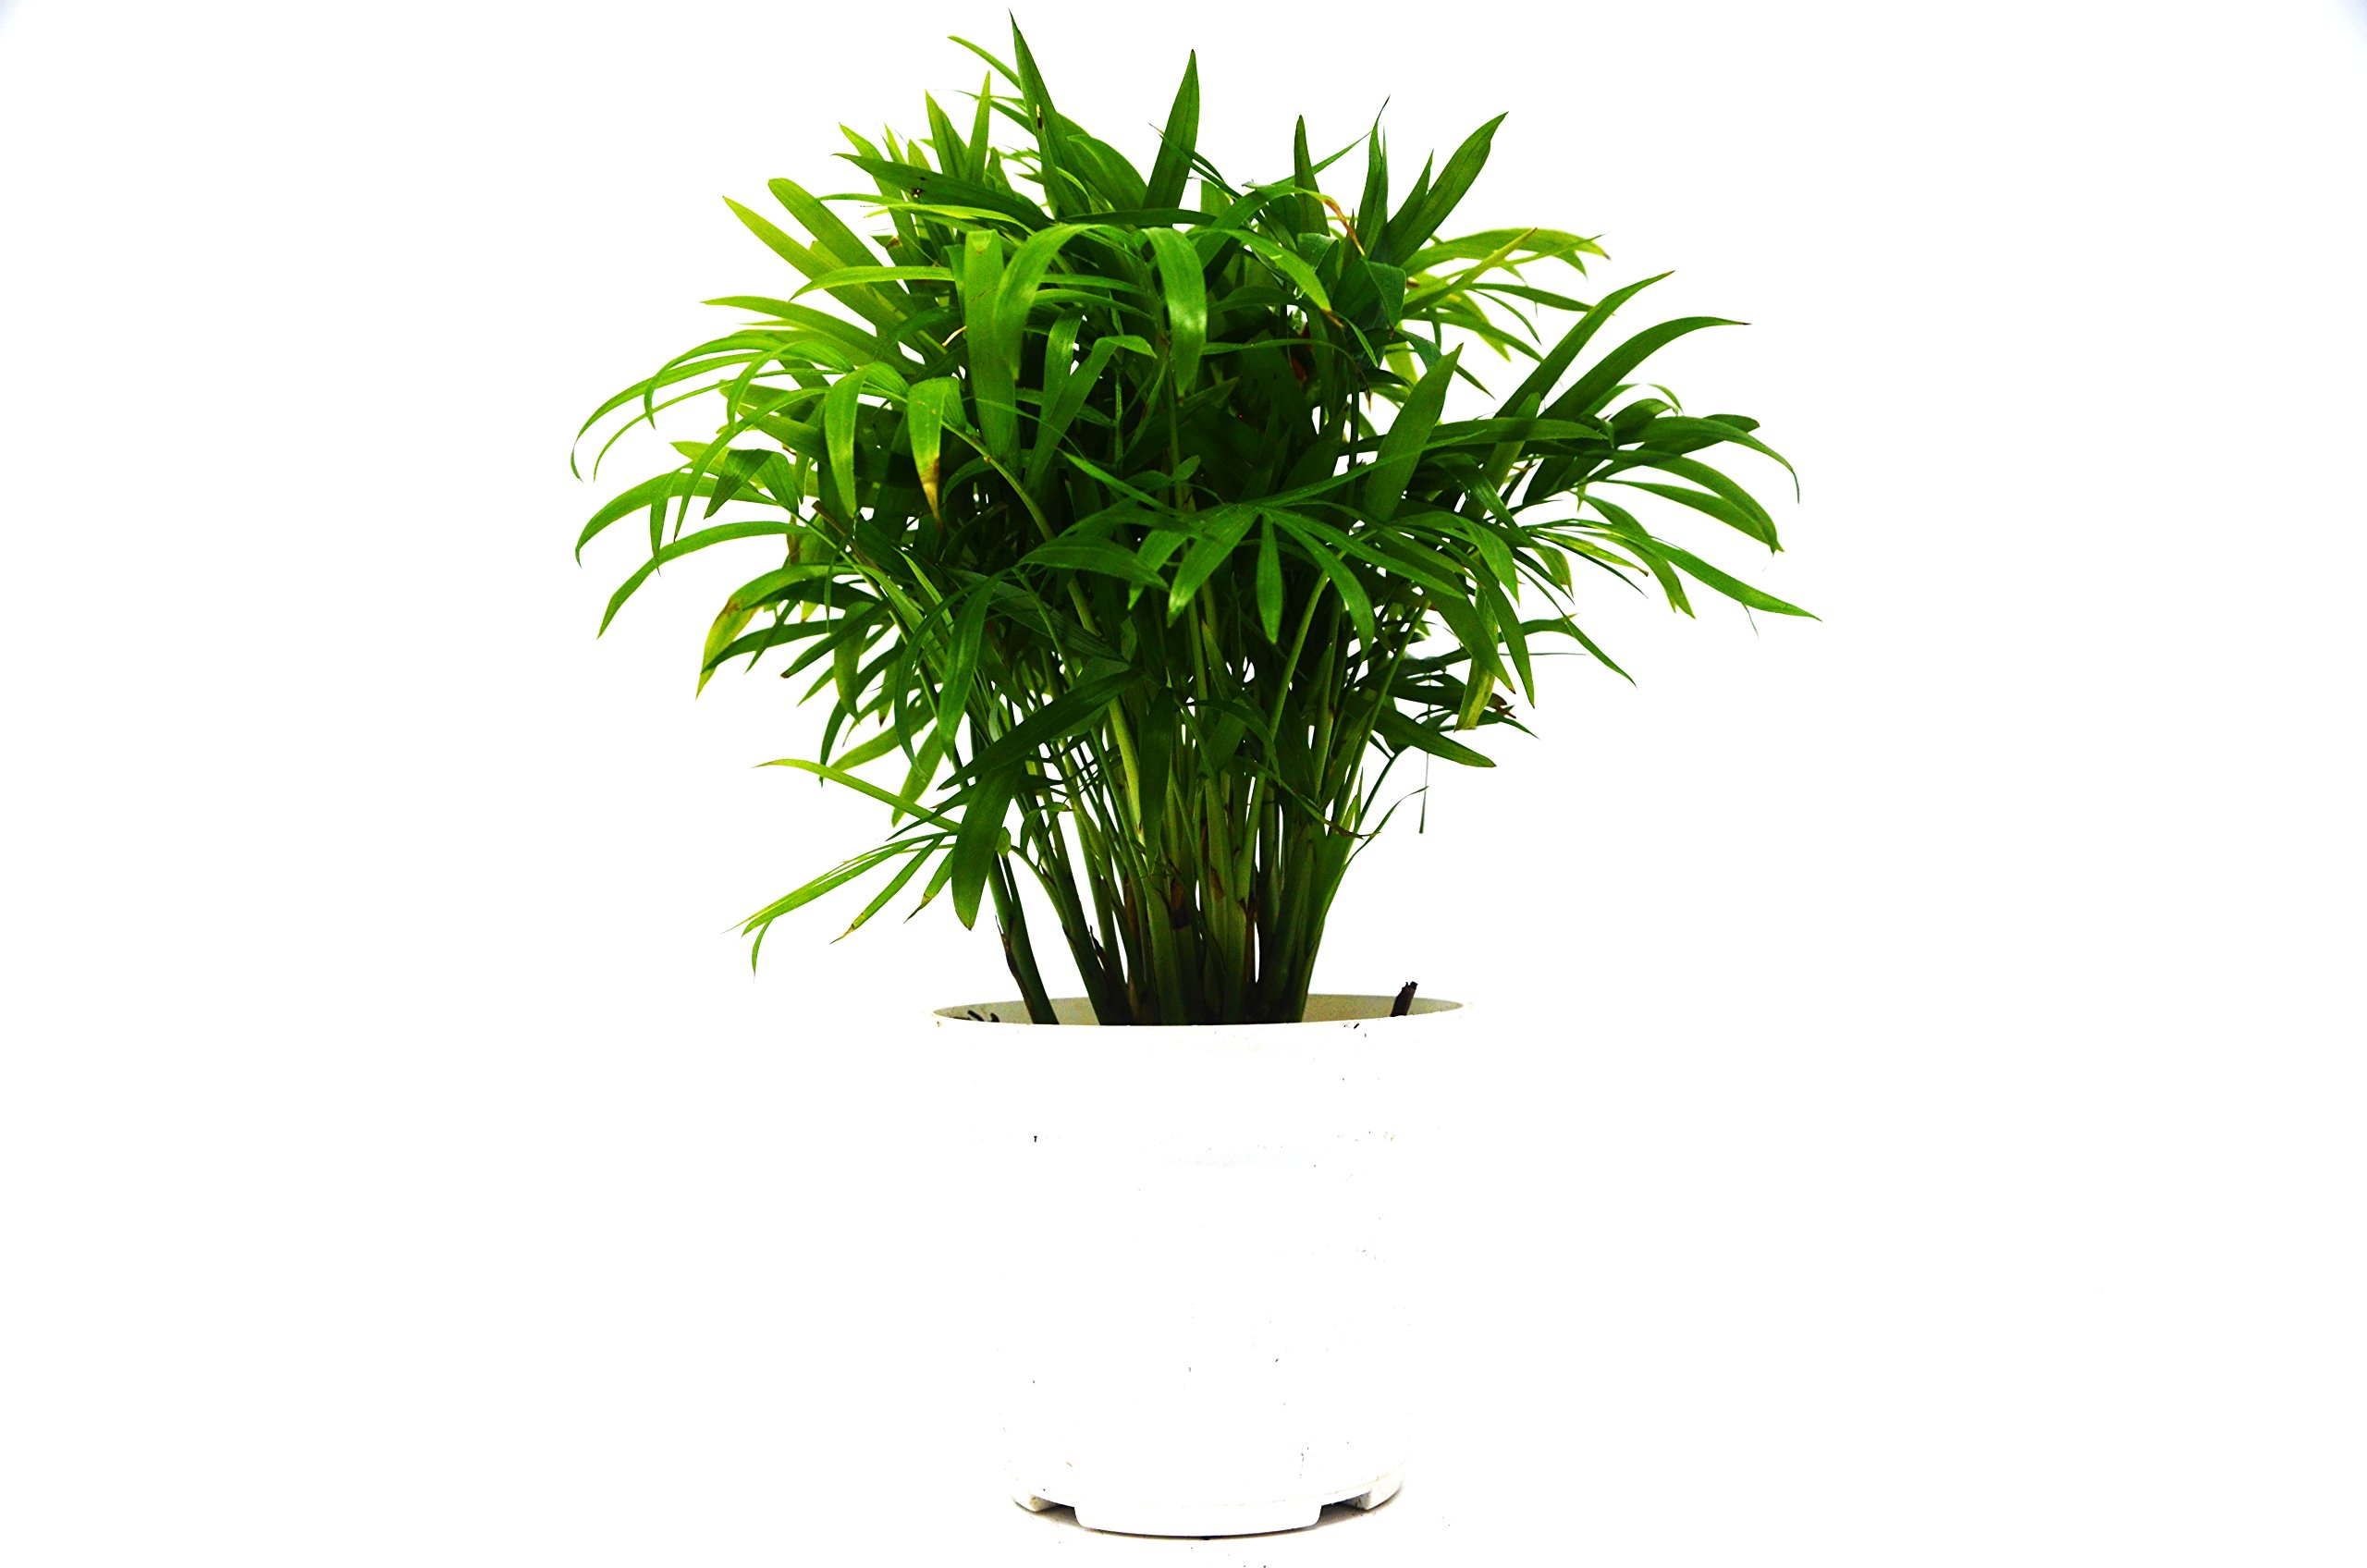 Parlor Palm in 4'' Pot - Live Indoor Plant - FREE Care Guide